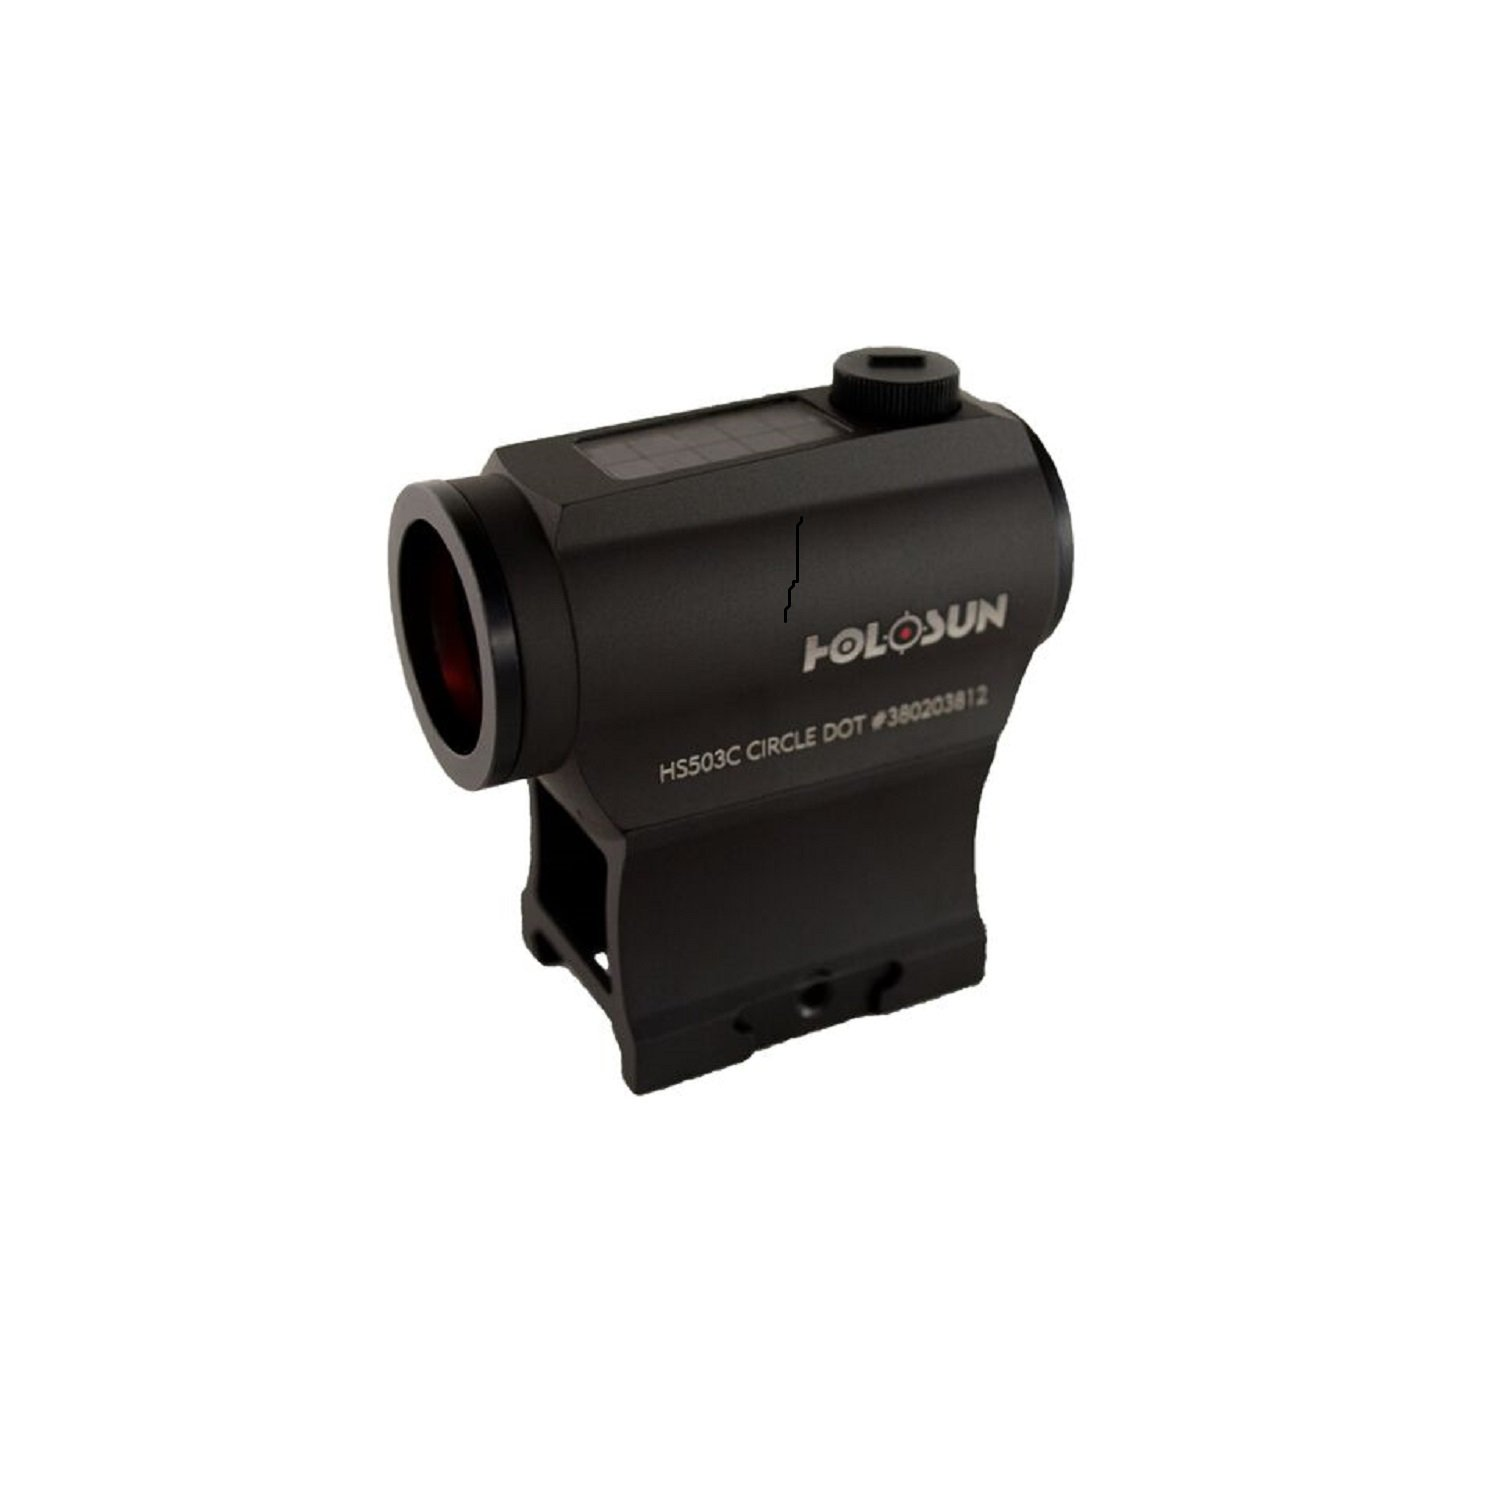 Holosun HS503C Paralow 133x54x72mm Circle Dot Sight